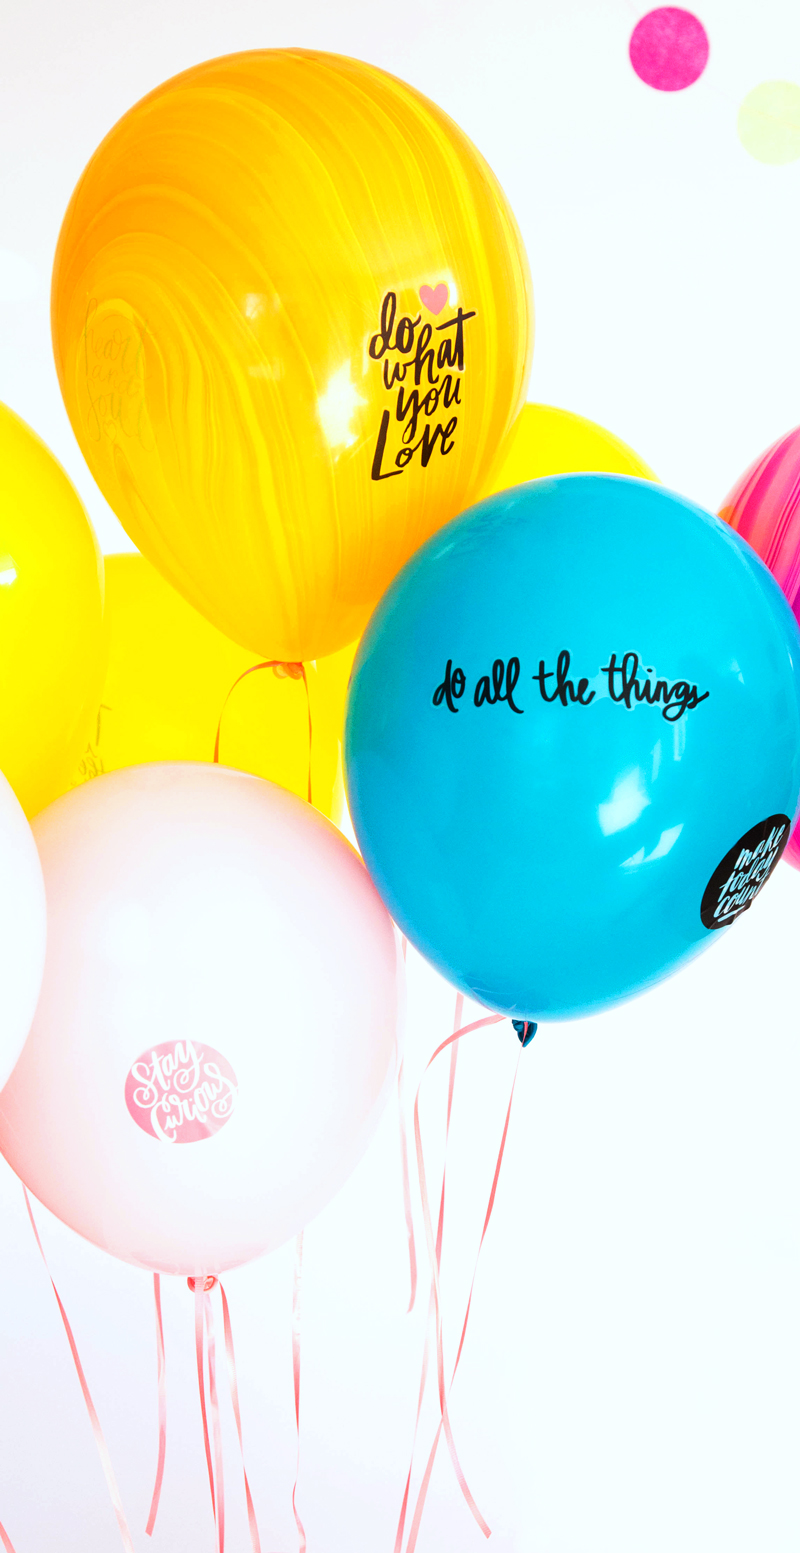 Motivational Balloons